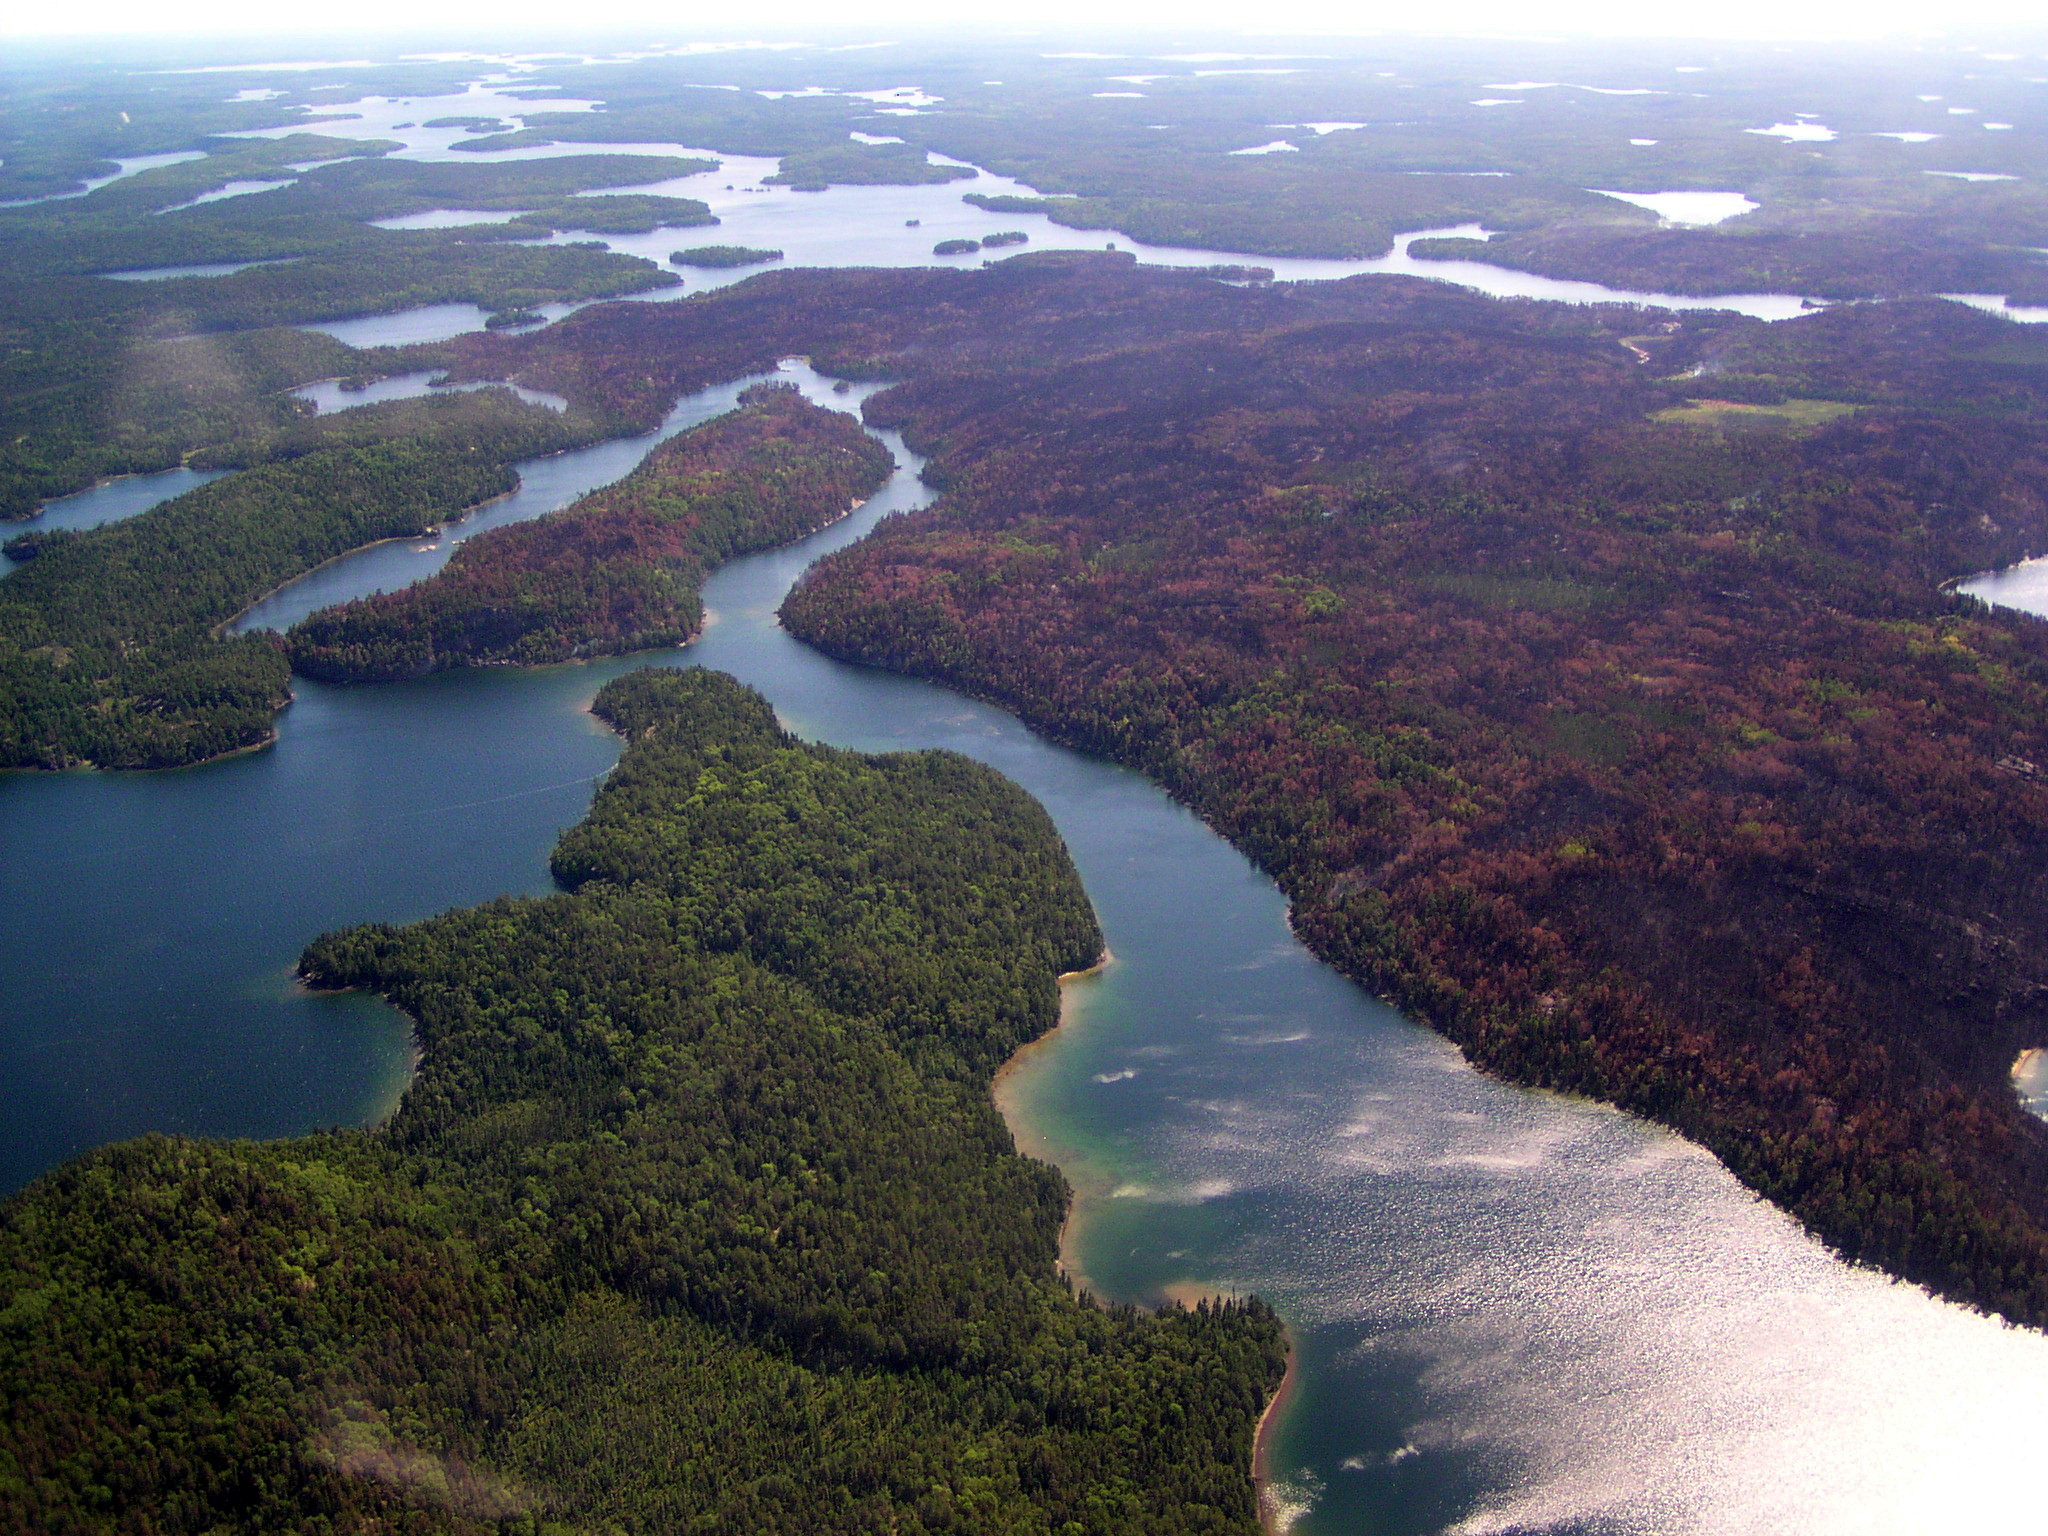 Areal photograph of lakes in Voyageurs National Park, Minnesota.